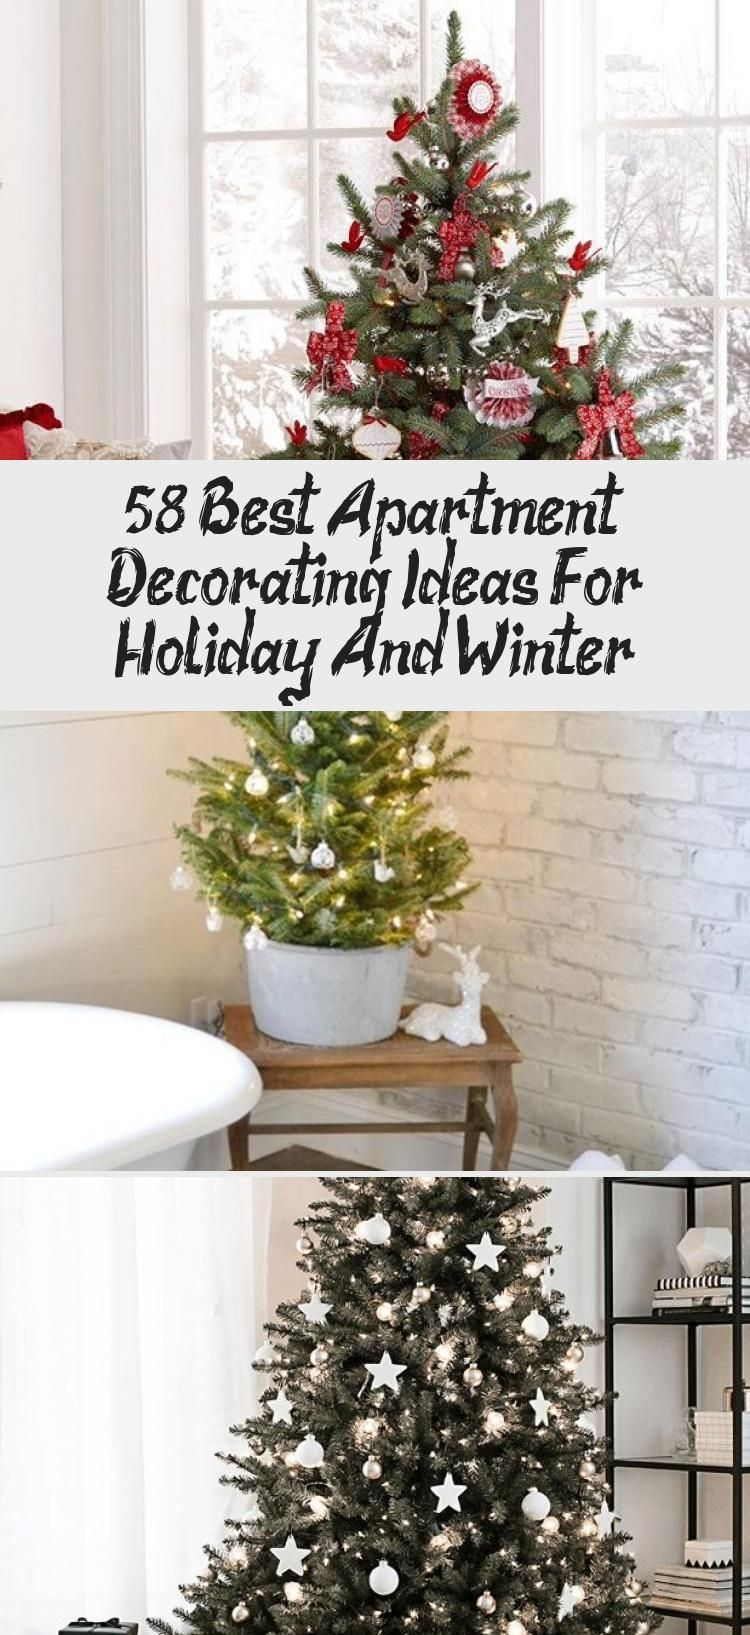 58 Best Apartment Decorating Ideas For Holiday And Winter In 2020 Apartment Decor Cool Apartments Small Apartment Decorating